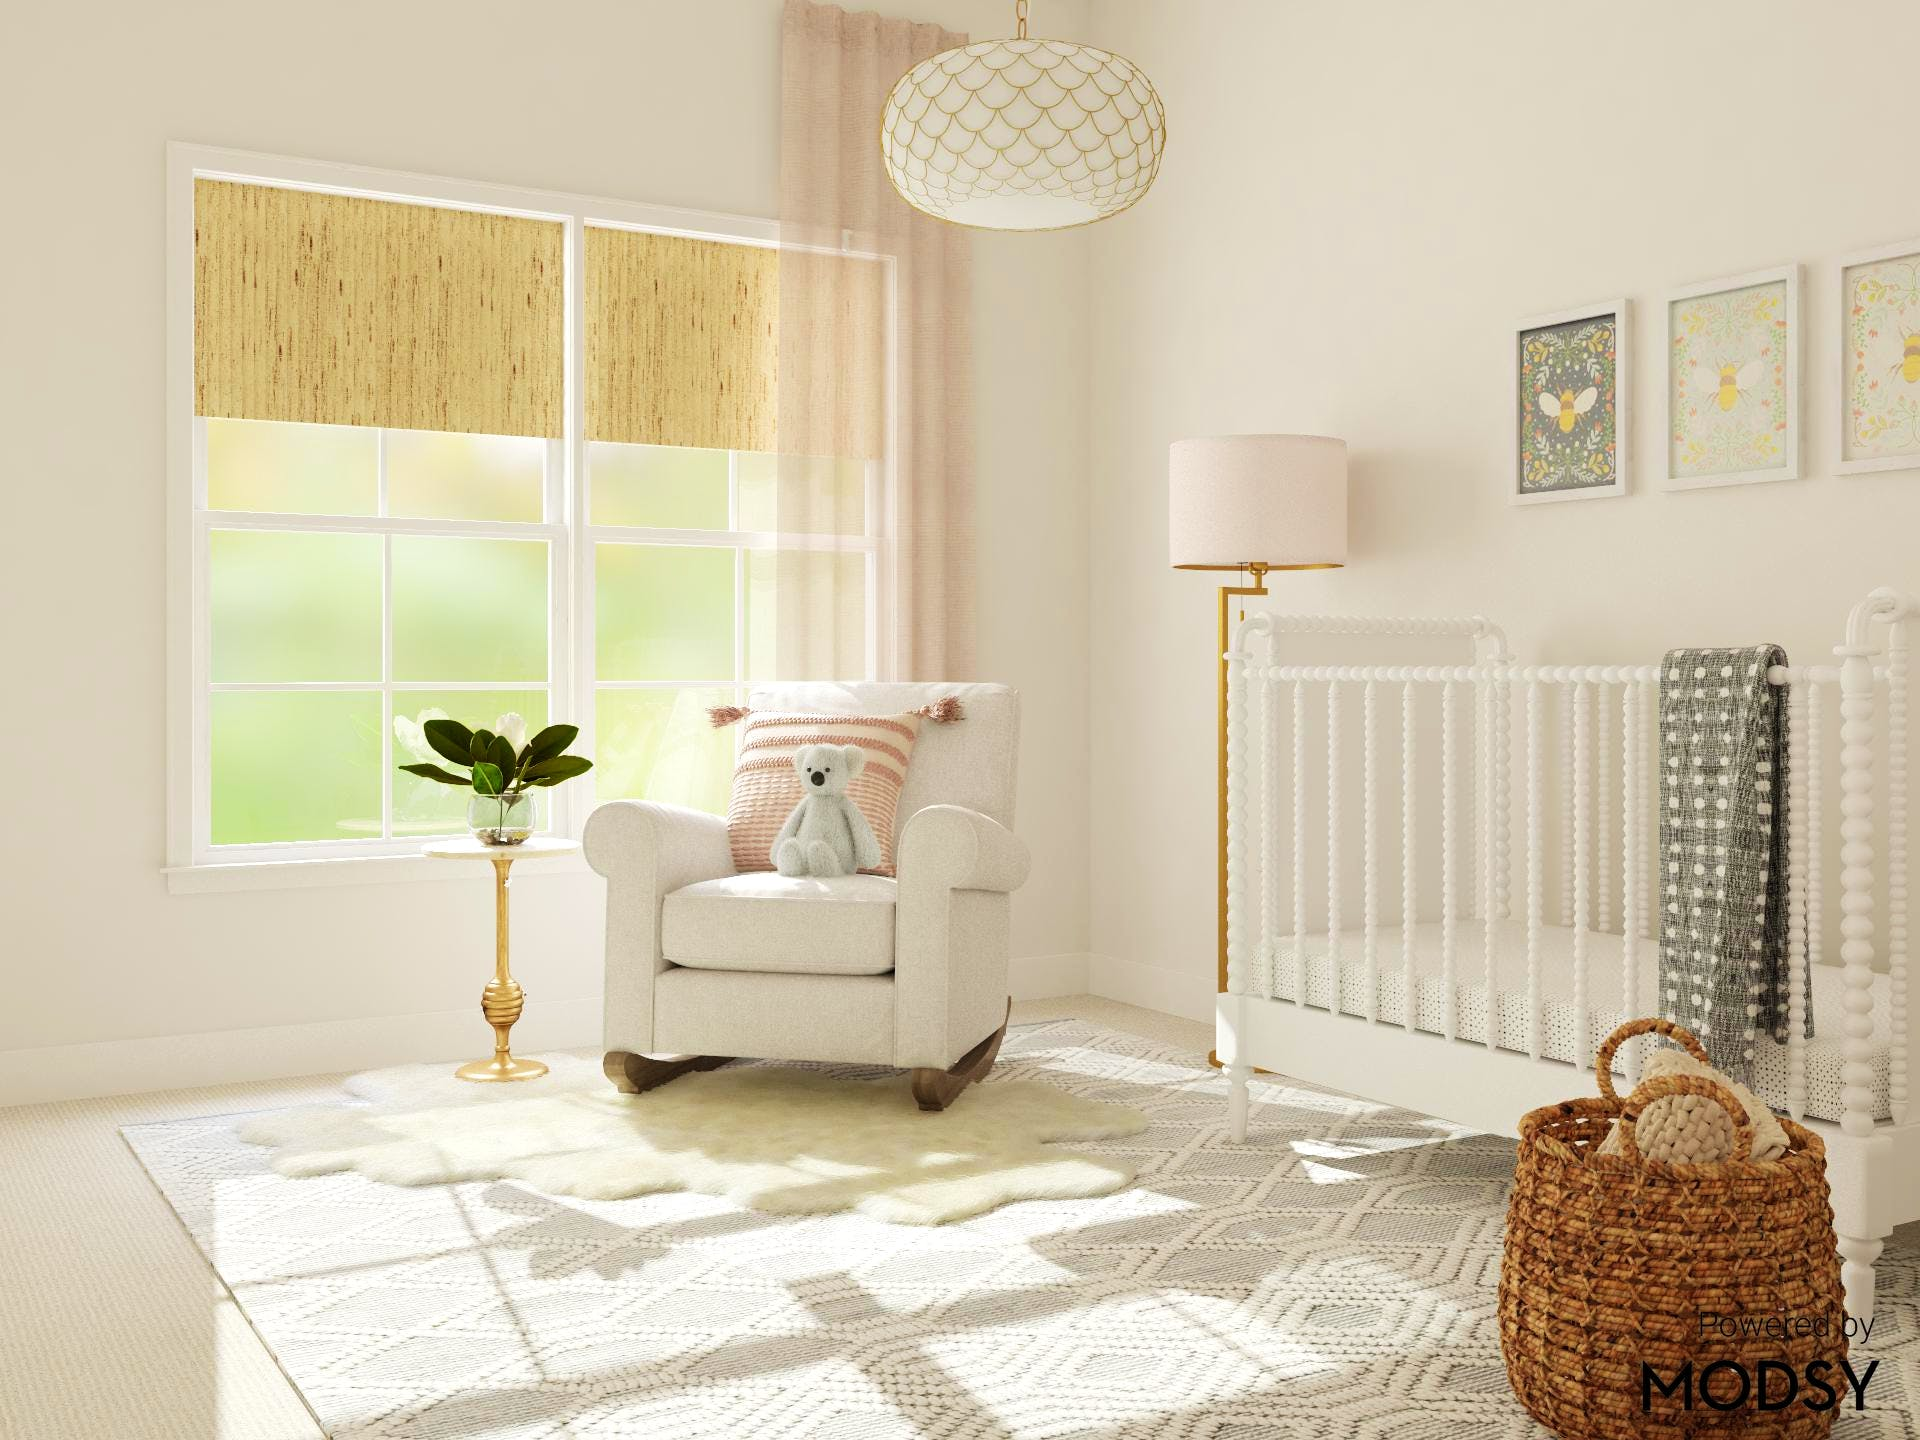 Sunny Rustic and Nursery in Pastels